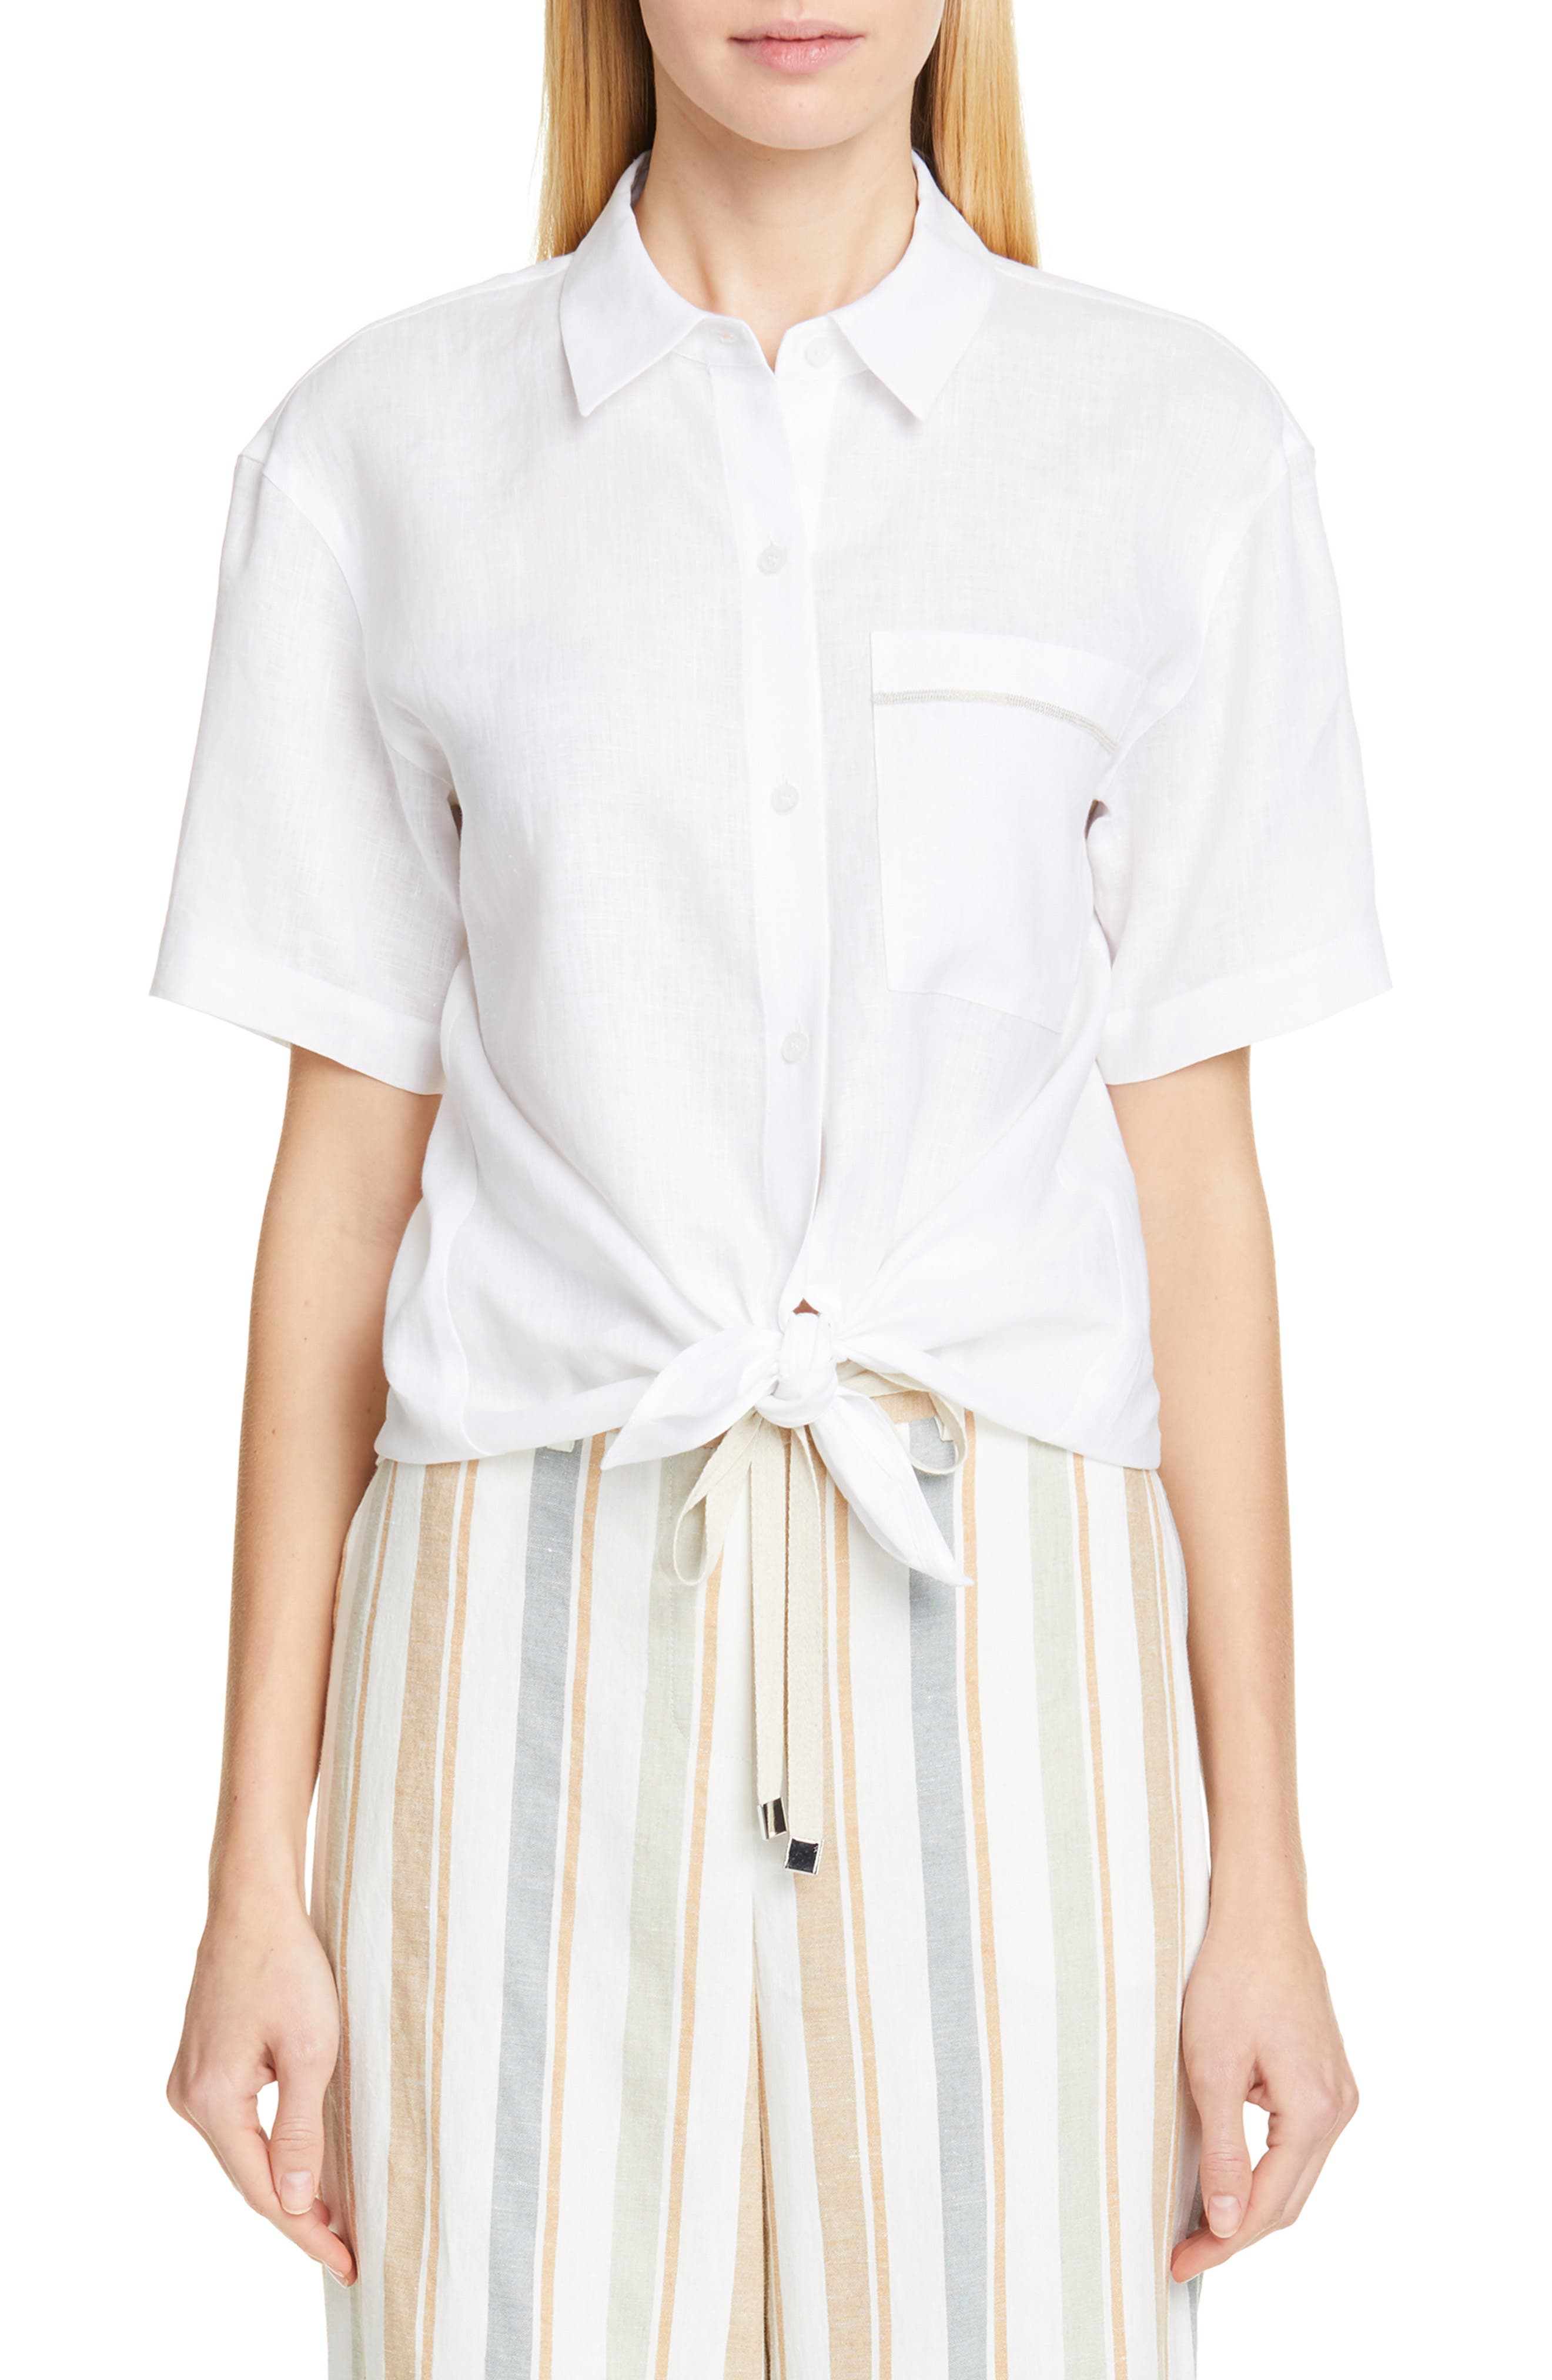 LAFAYETTE 148 NEW YORK Justice Linen Shirt, Main, color, WHITE